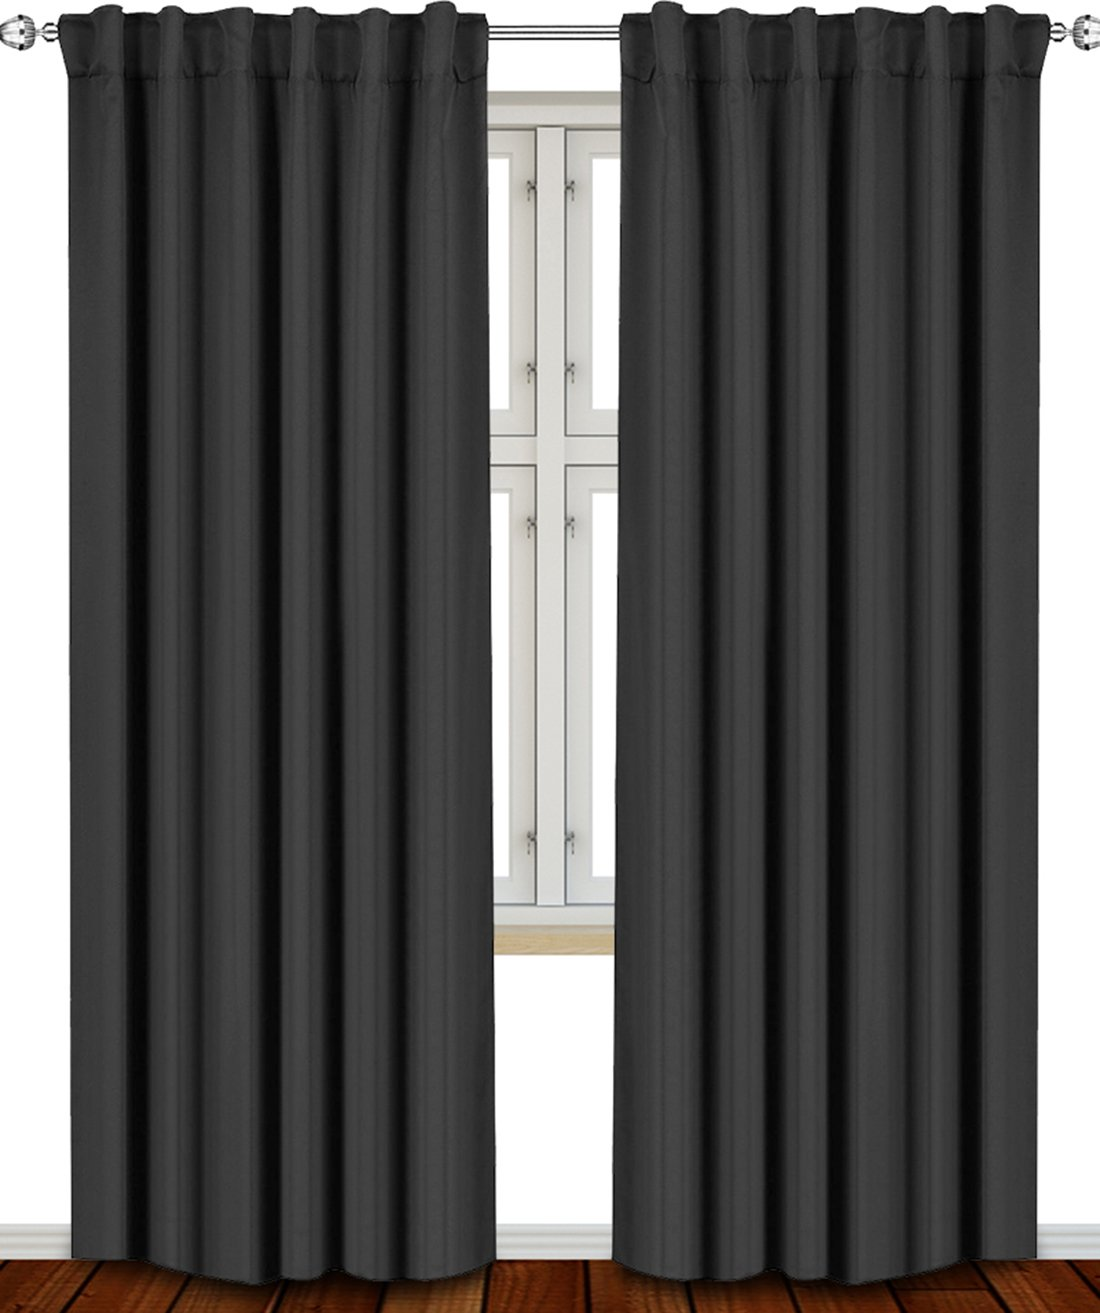 Black Curtains Drapes Best Deals Ease Bedding With Style